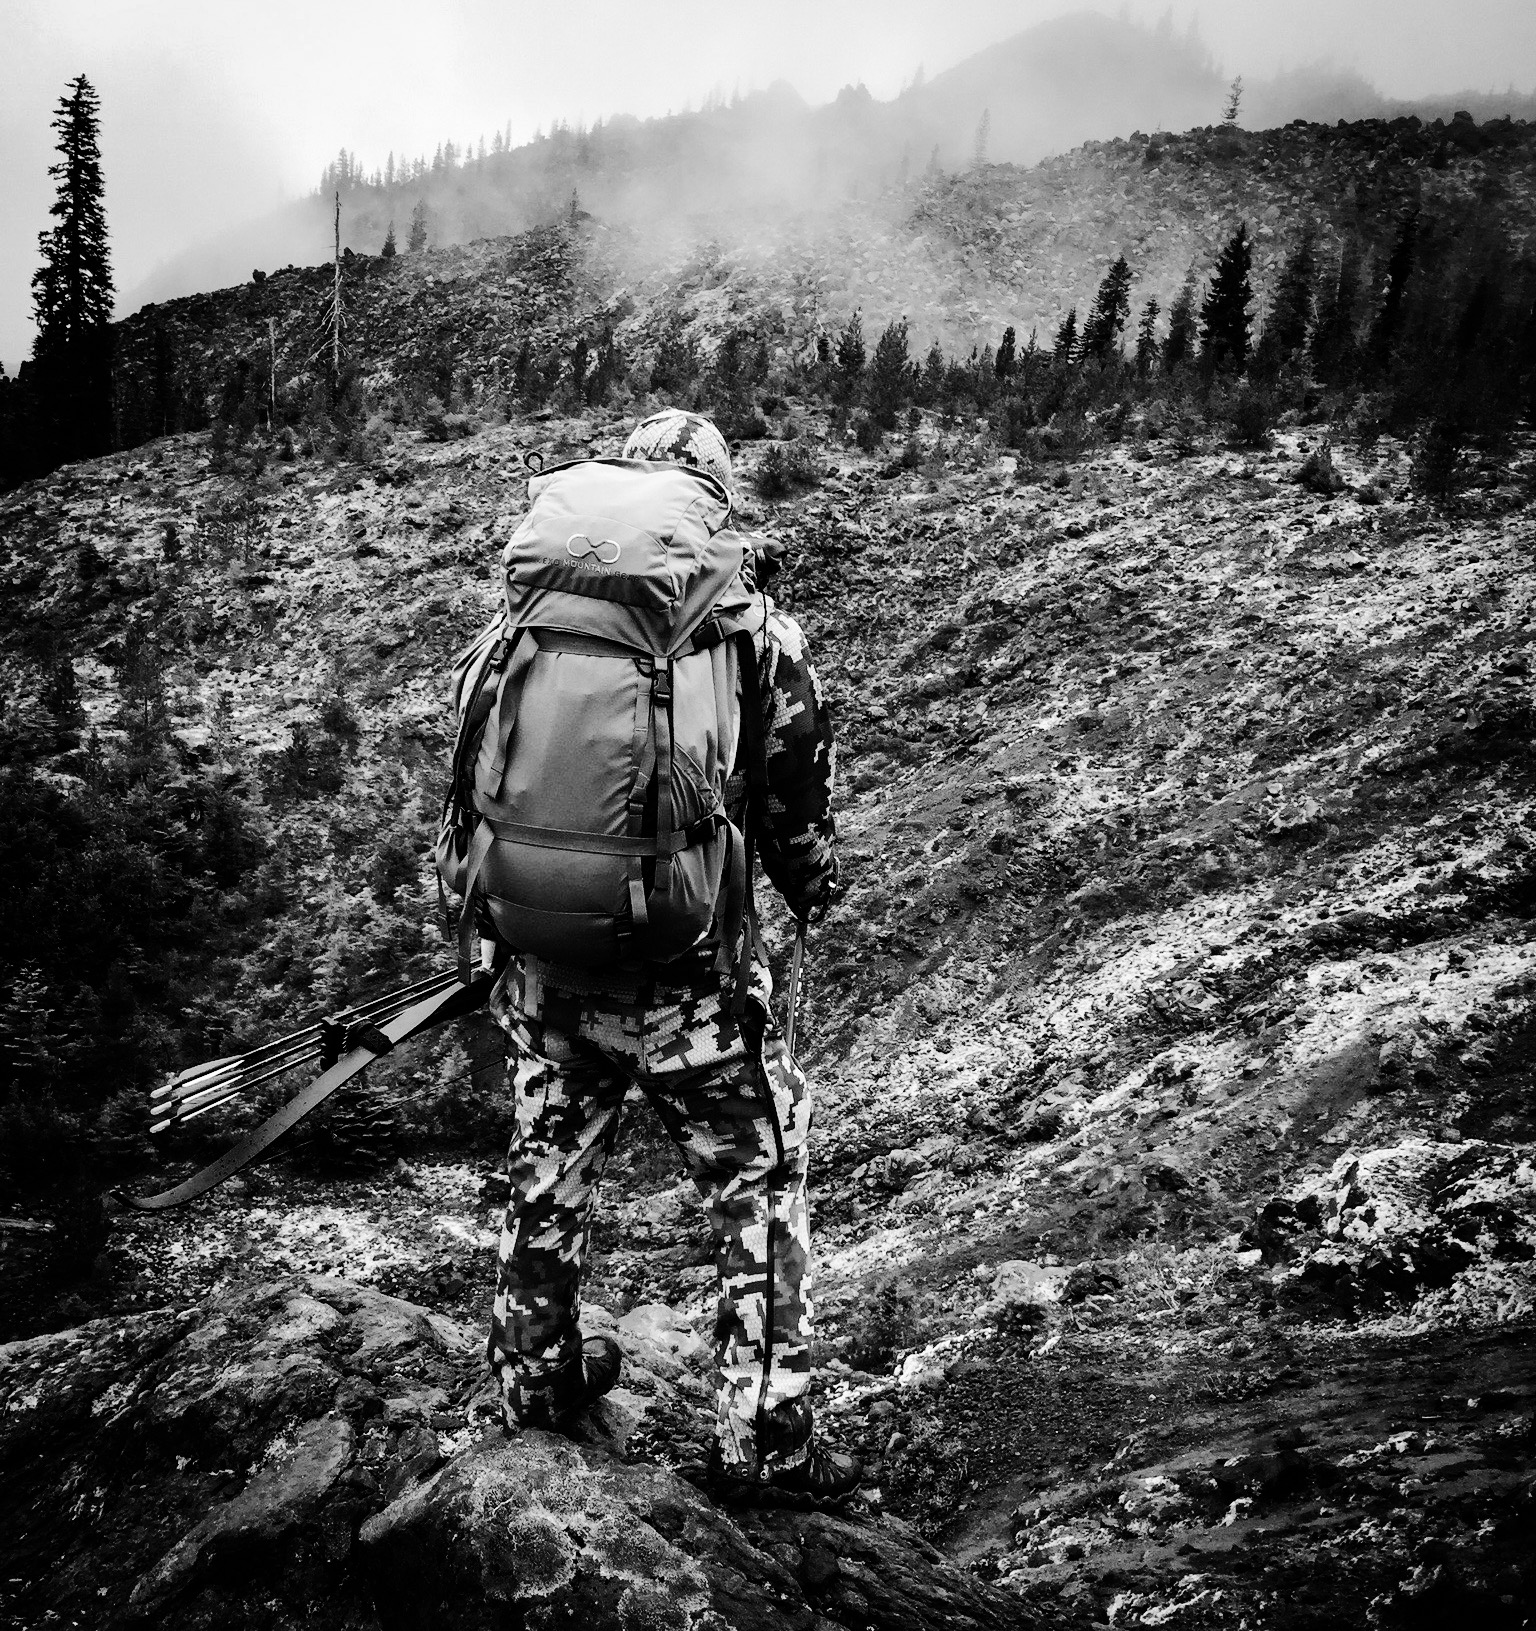 This image was taking from a 2015 elk hunt. I wish I could go through that pack!